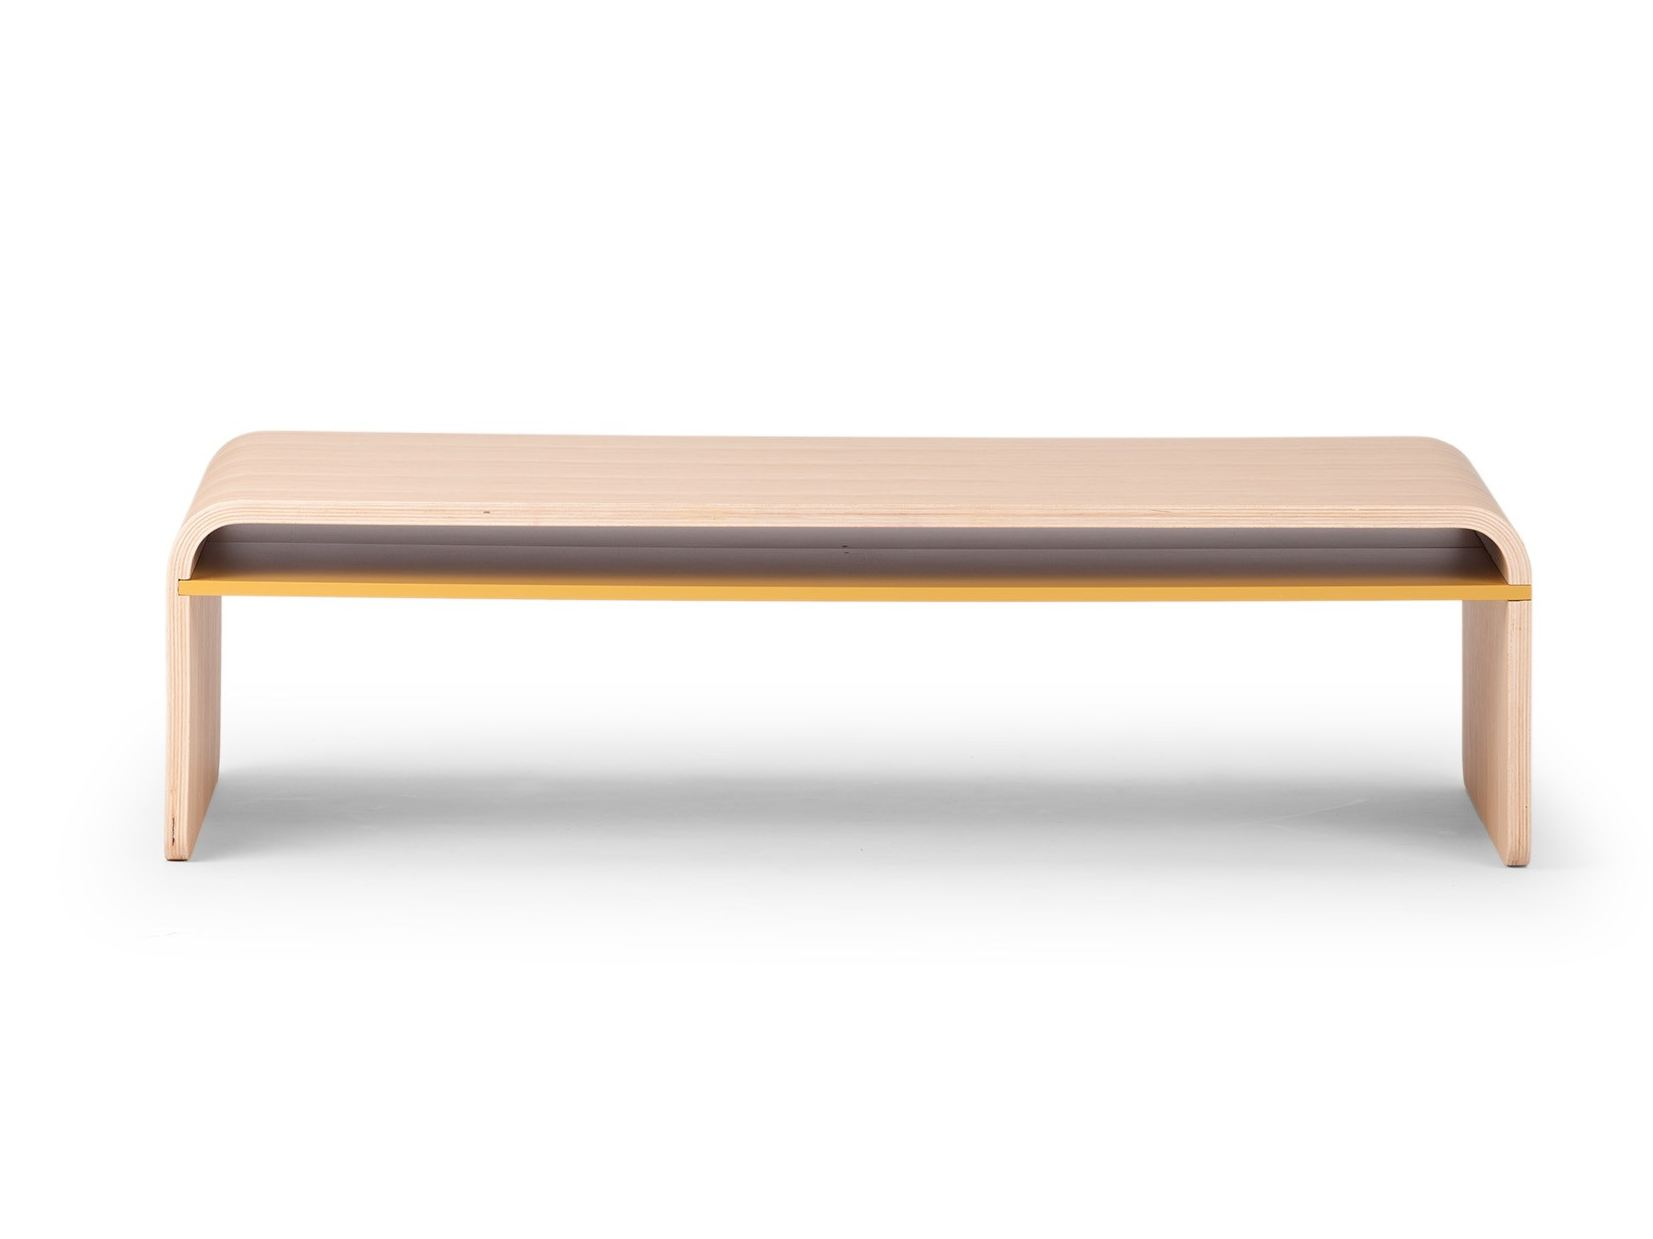 Wooden coffee table AUTHENTICO CUBE ZIGZAG By KARE DESIGN